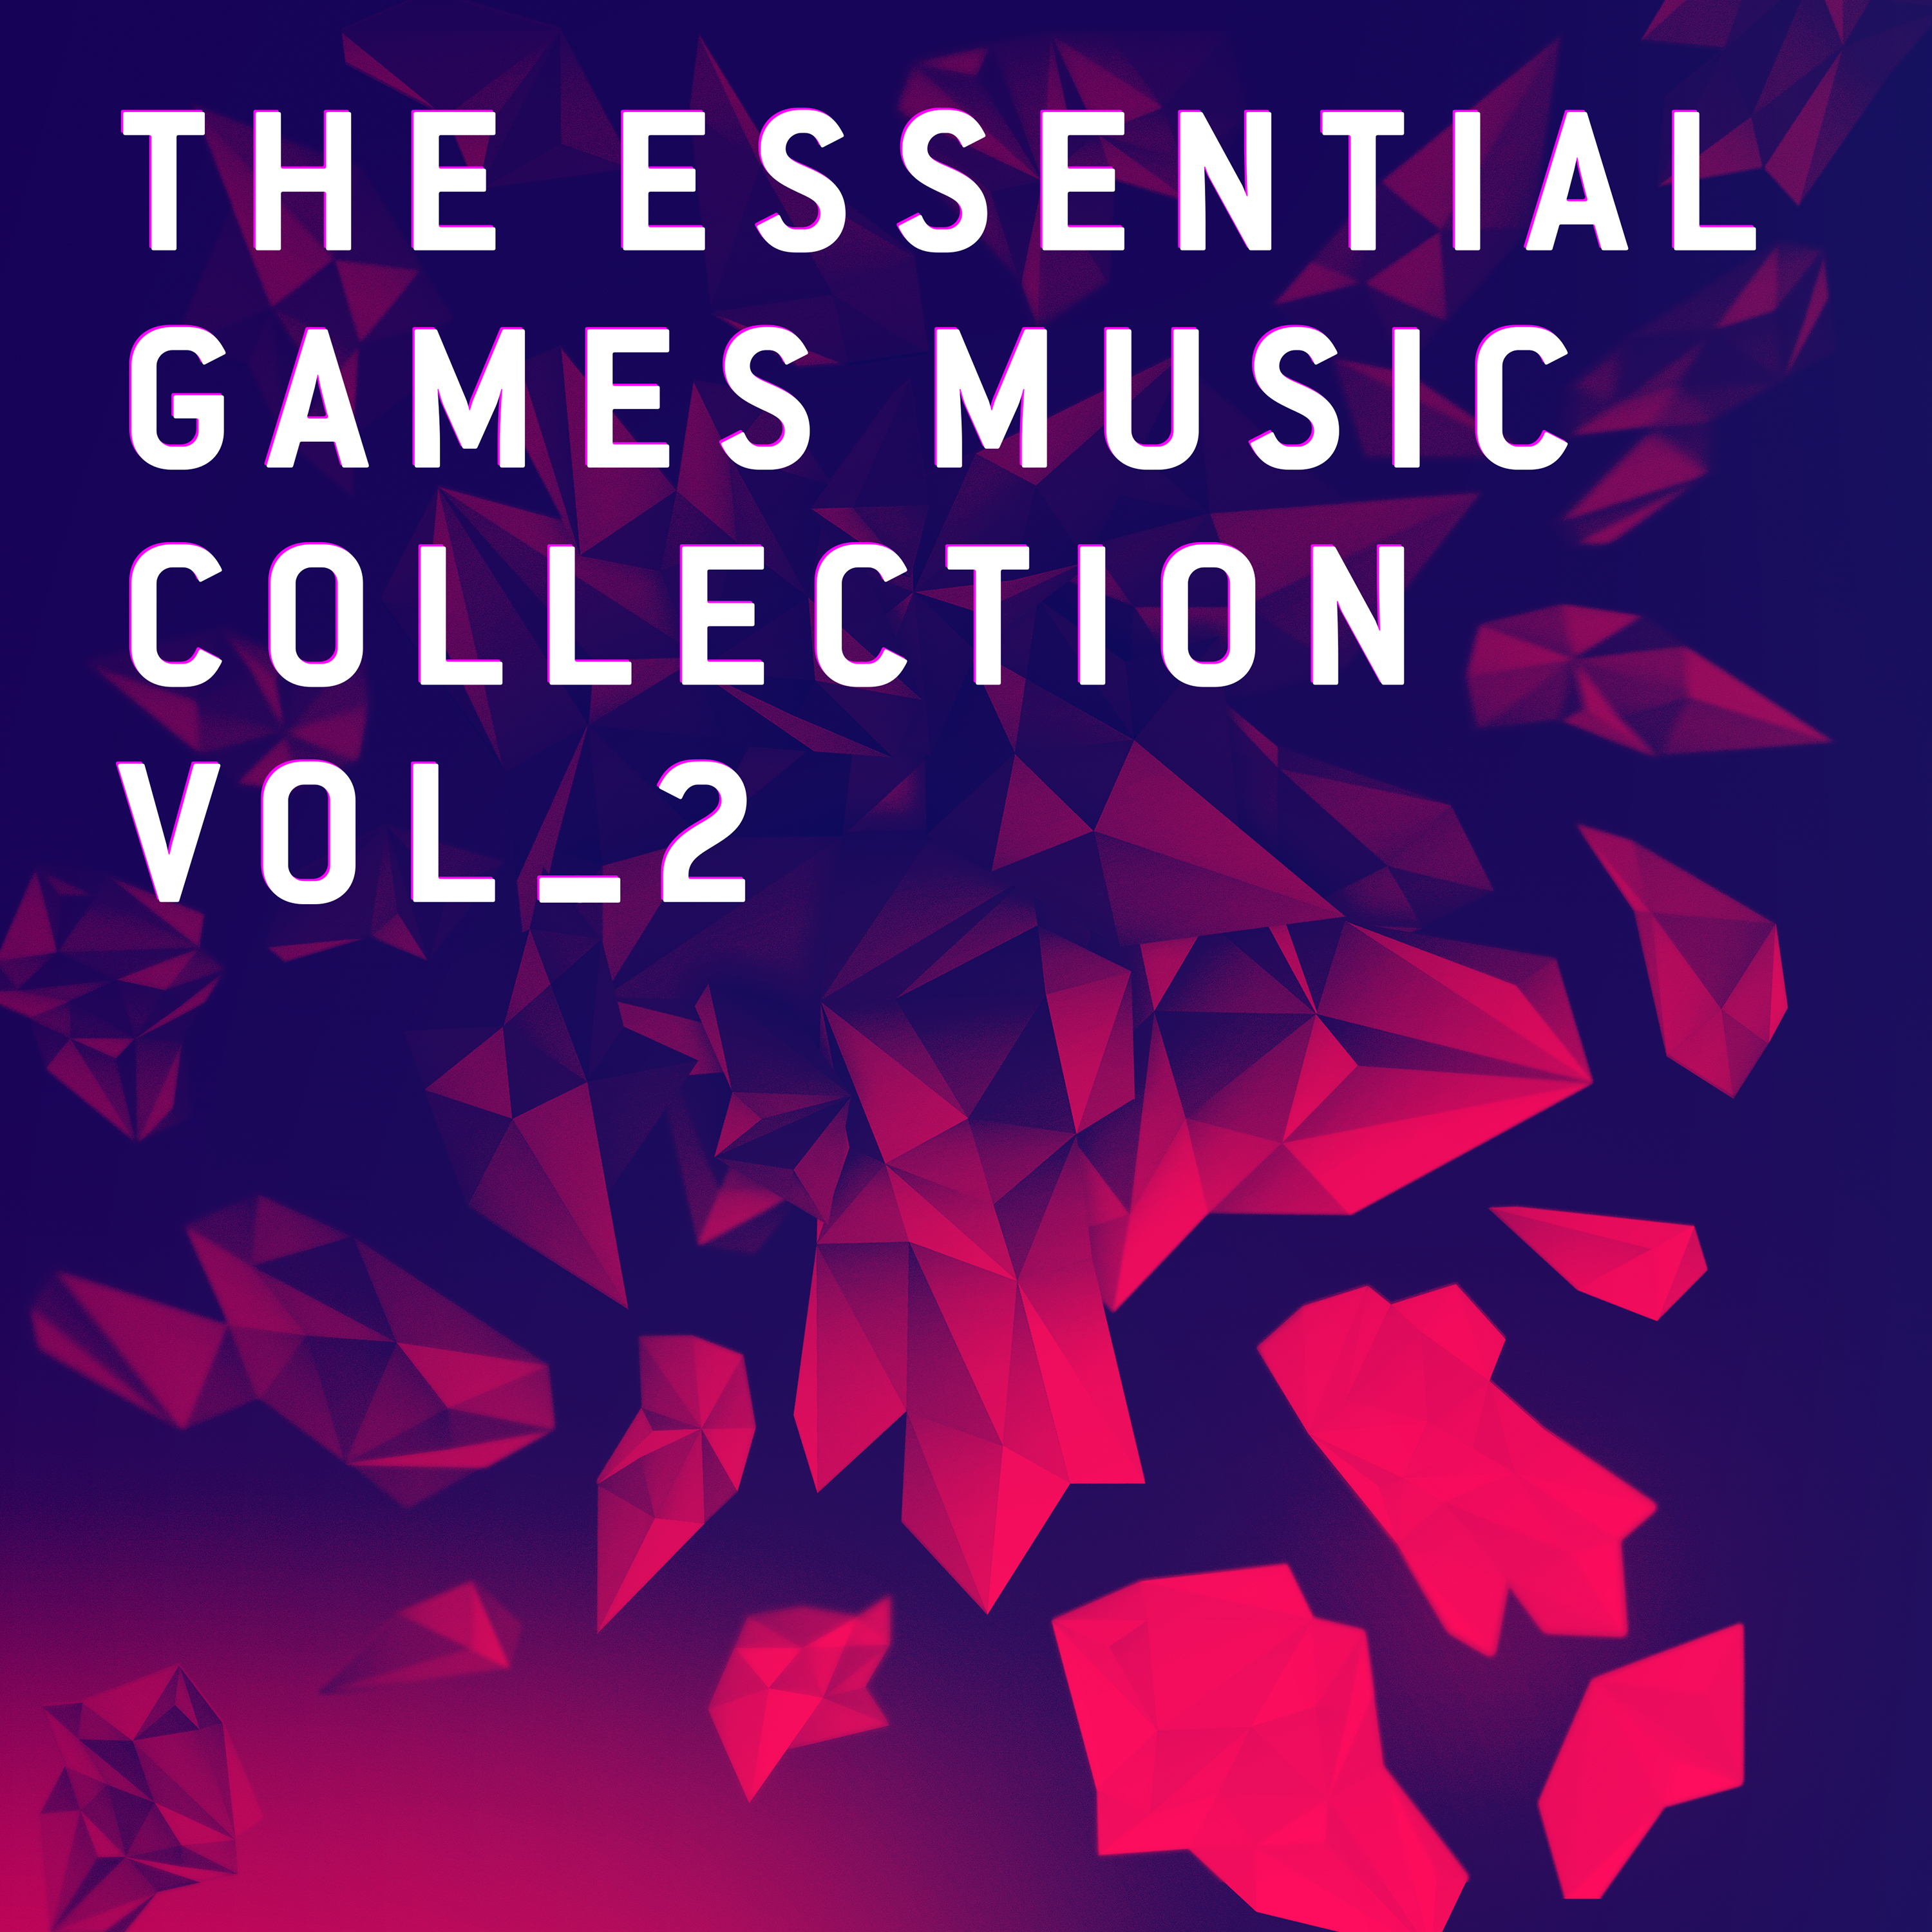 The Essential Games Music Collection Vol 2